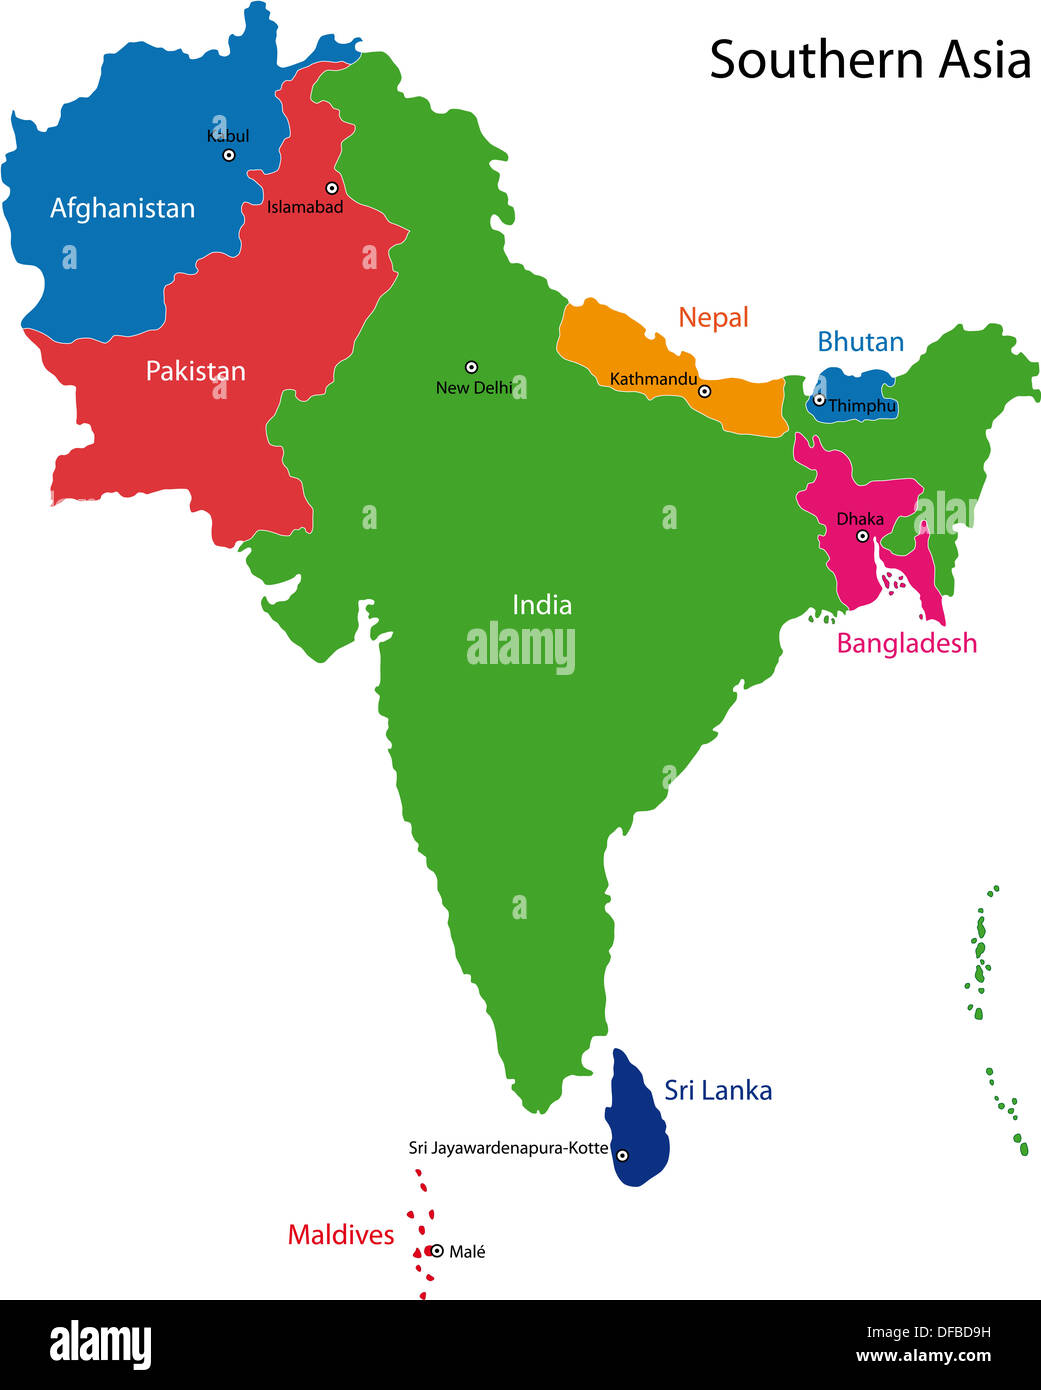 Southern Asia Map Southern Asia map Stock Photo: 61102877   Alamy